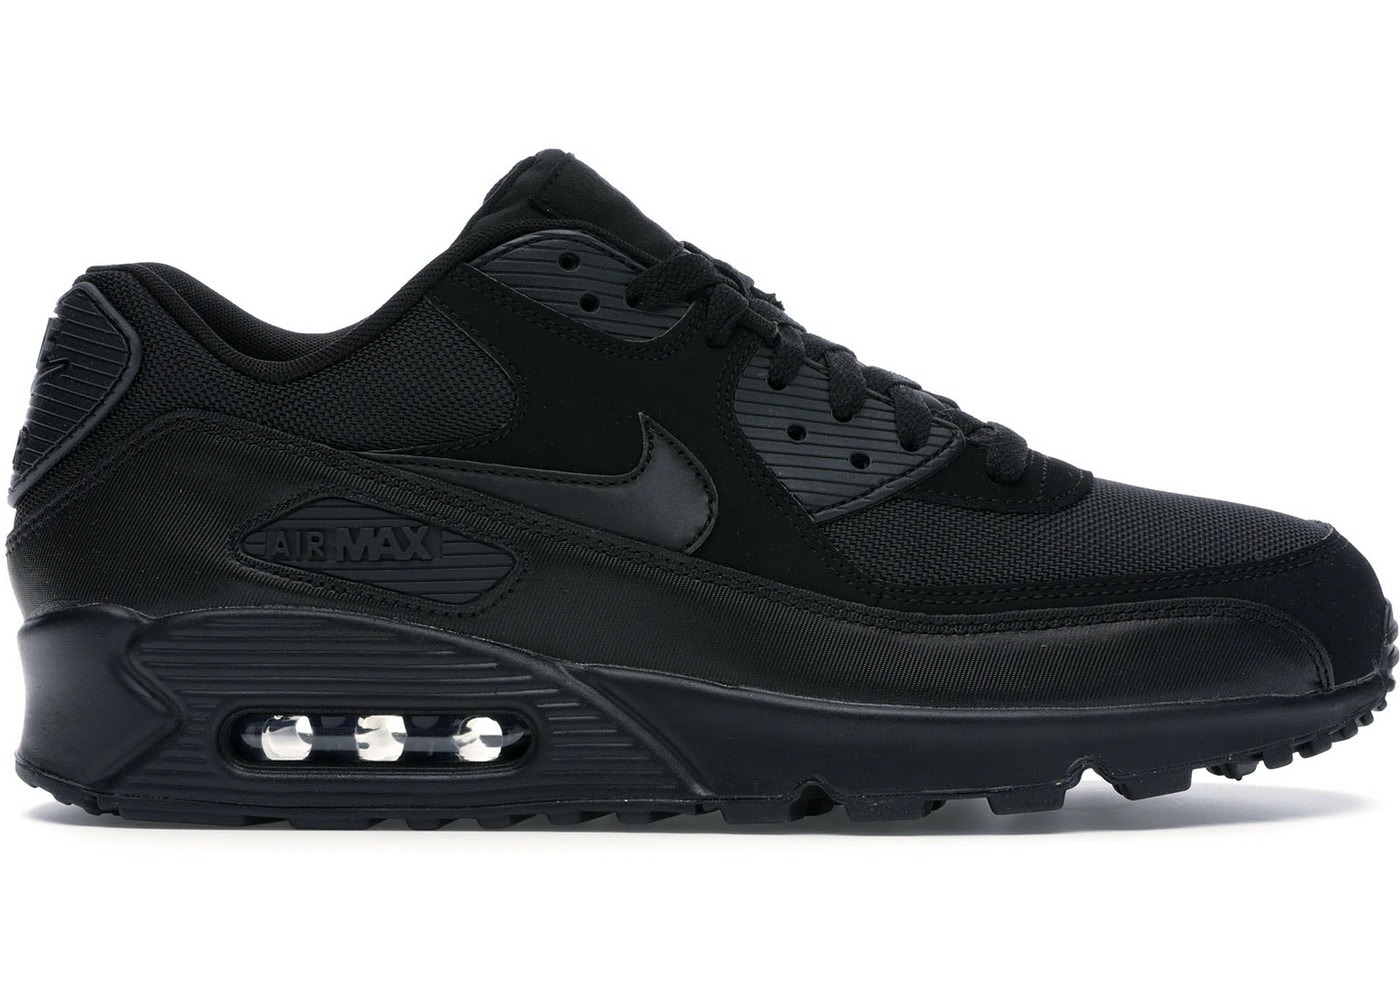 low priced c8689 6d1b4 Air Max 90 Triple Black (2018)